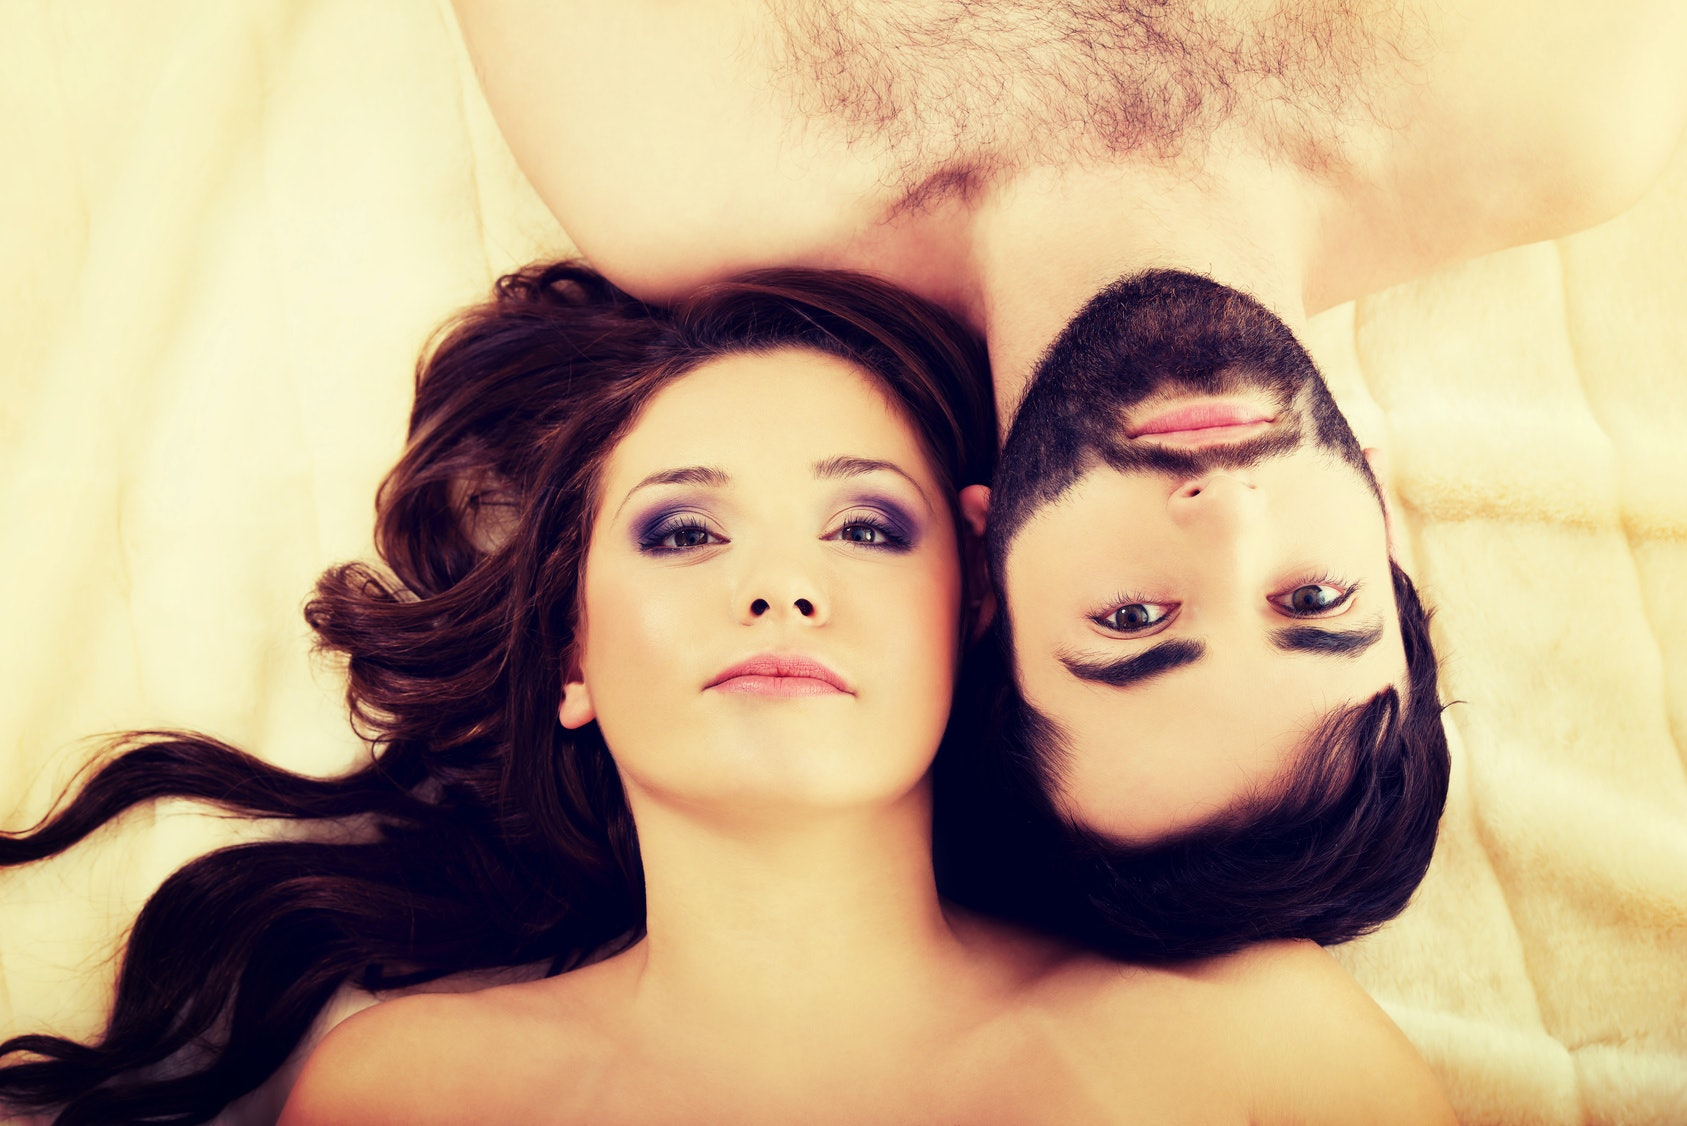 Tricks to satisfy a woman in bed